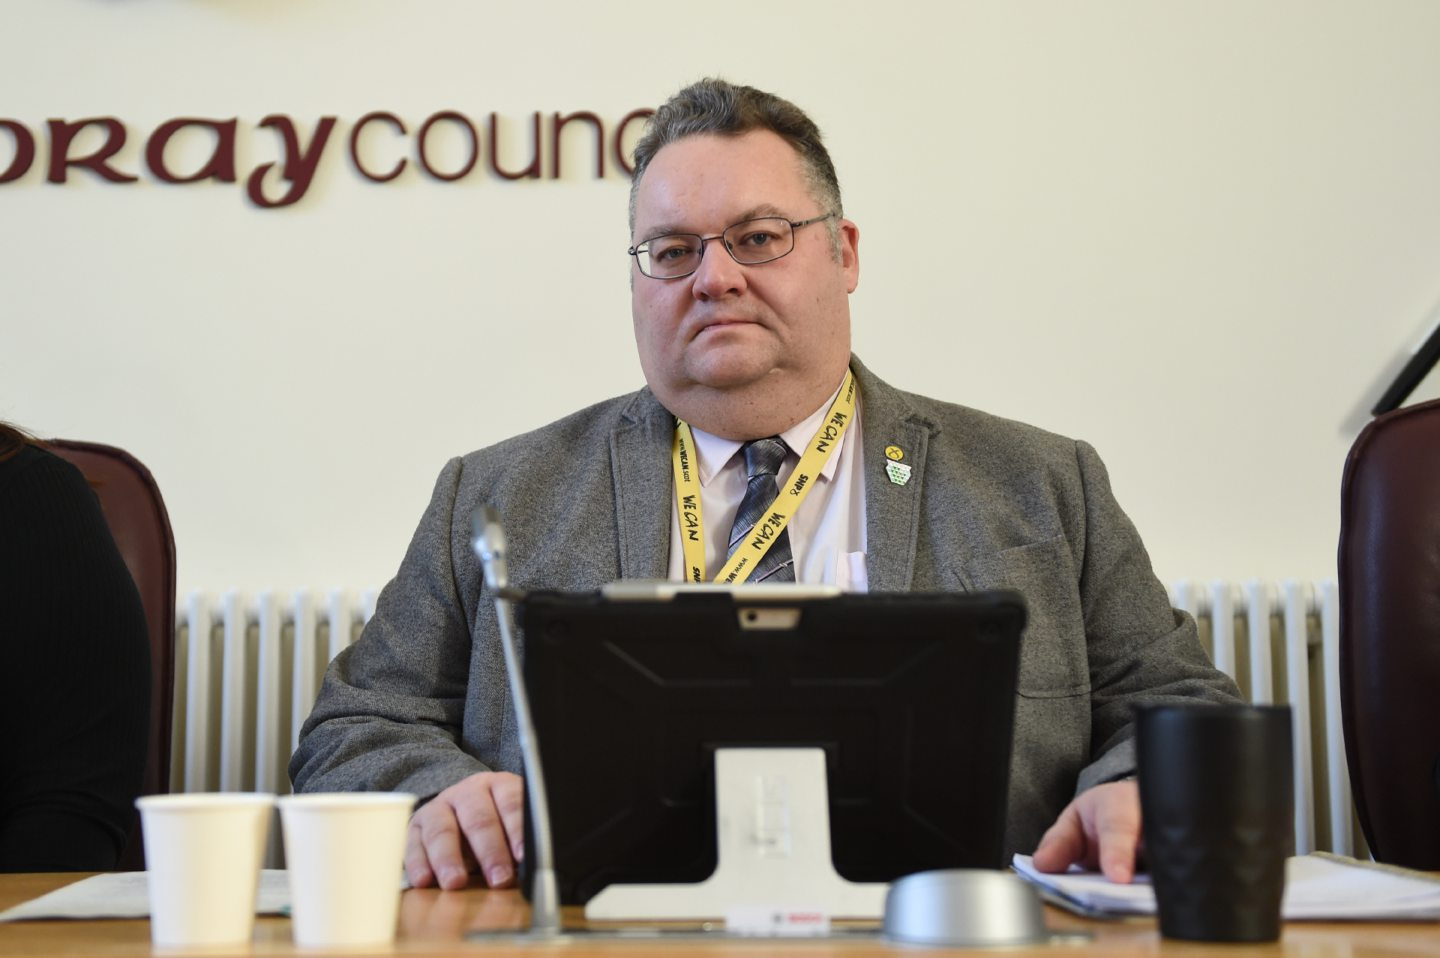 Council tax in Moray to be frozen for the next year – The Courier